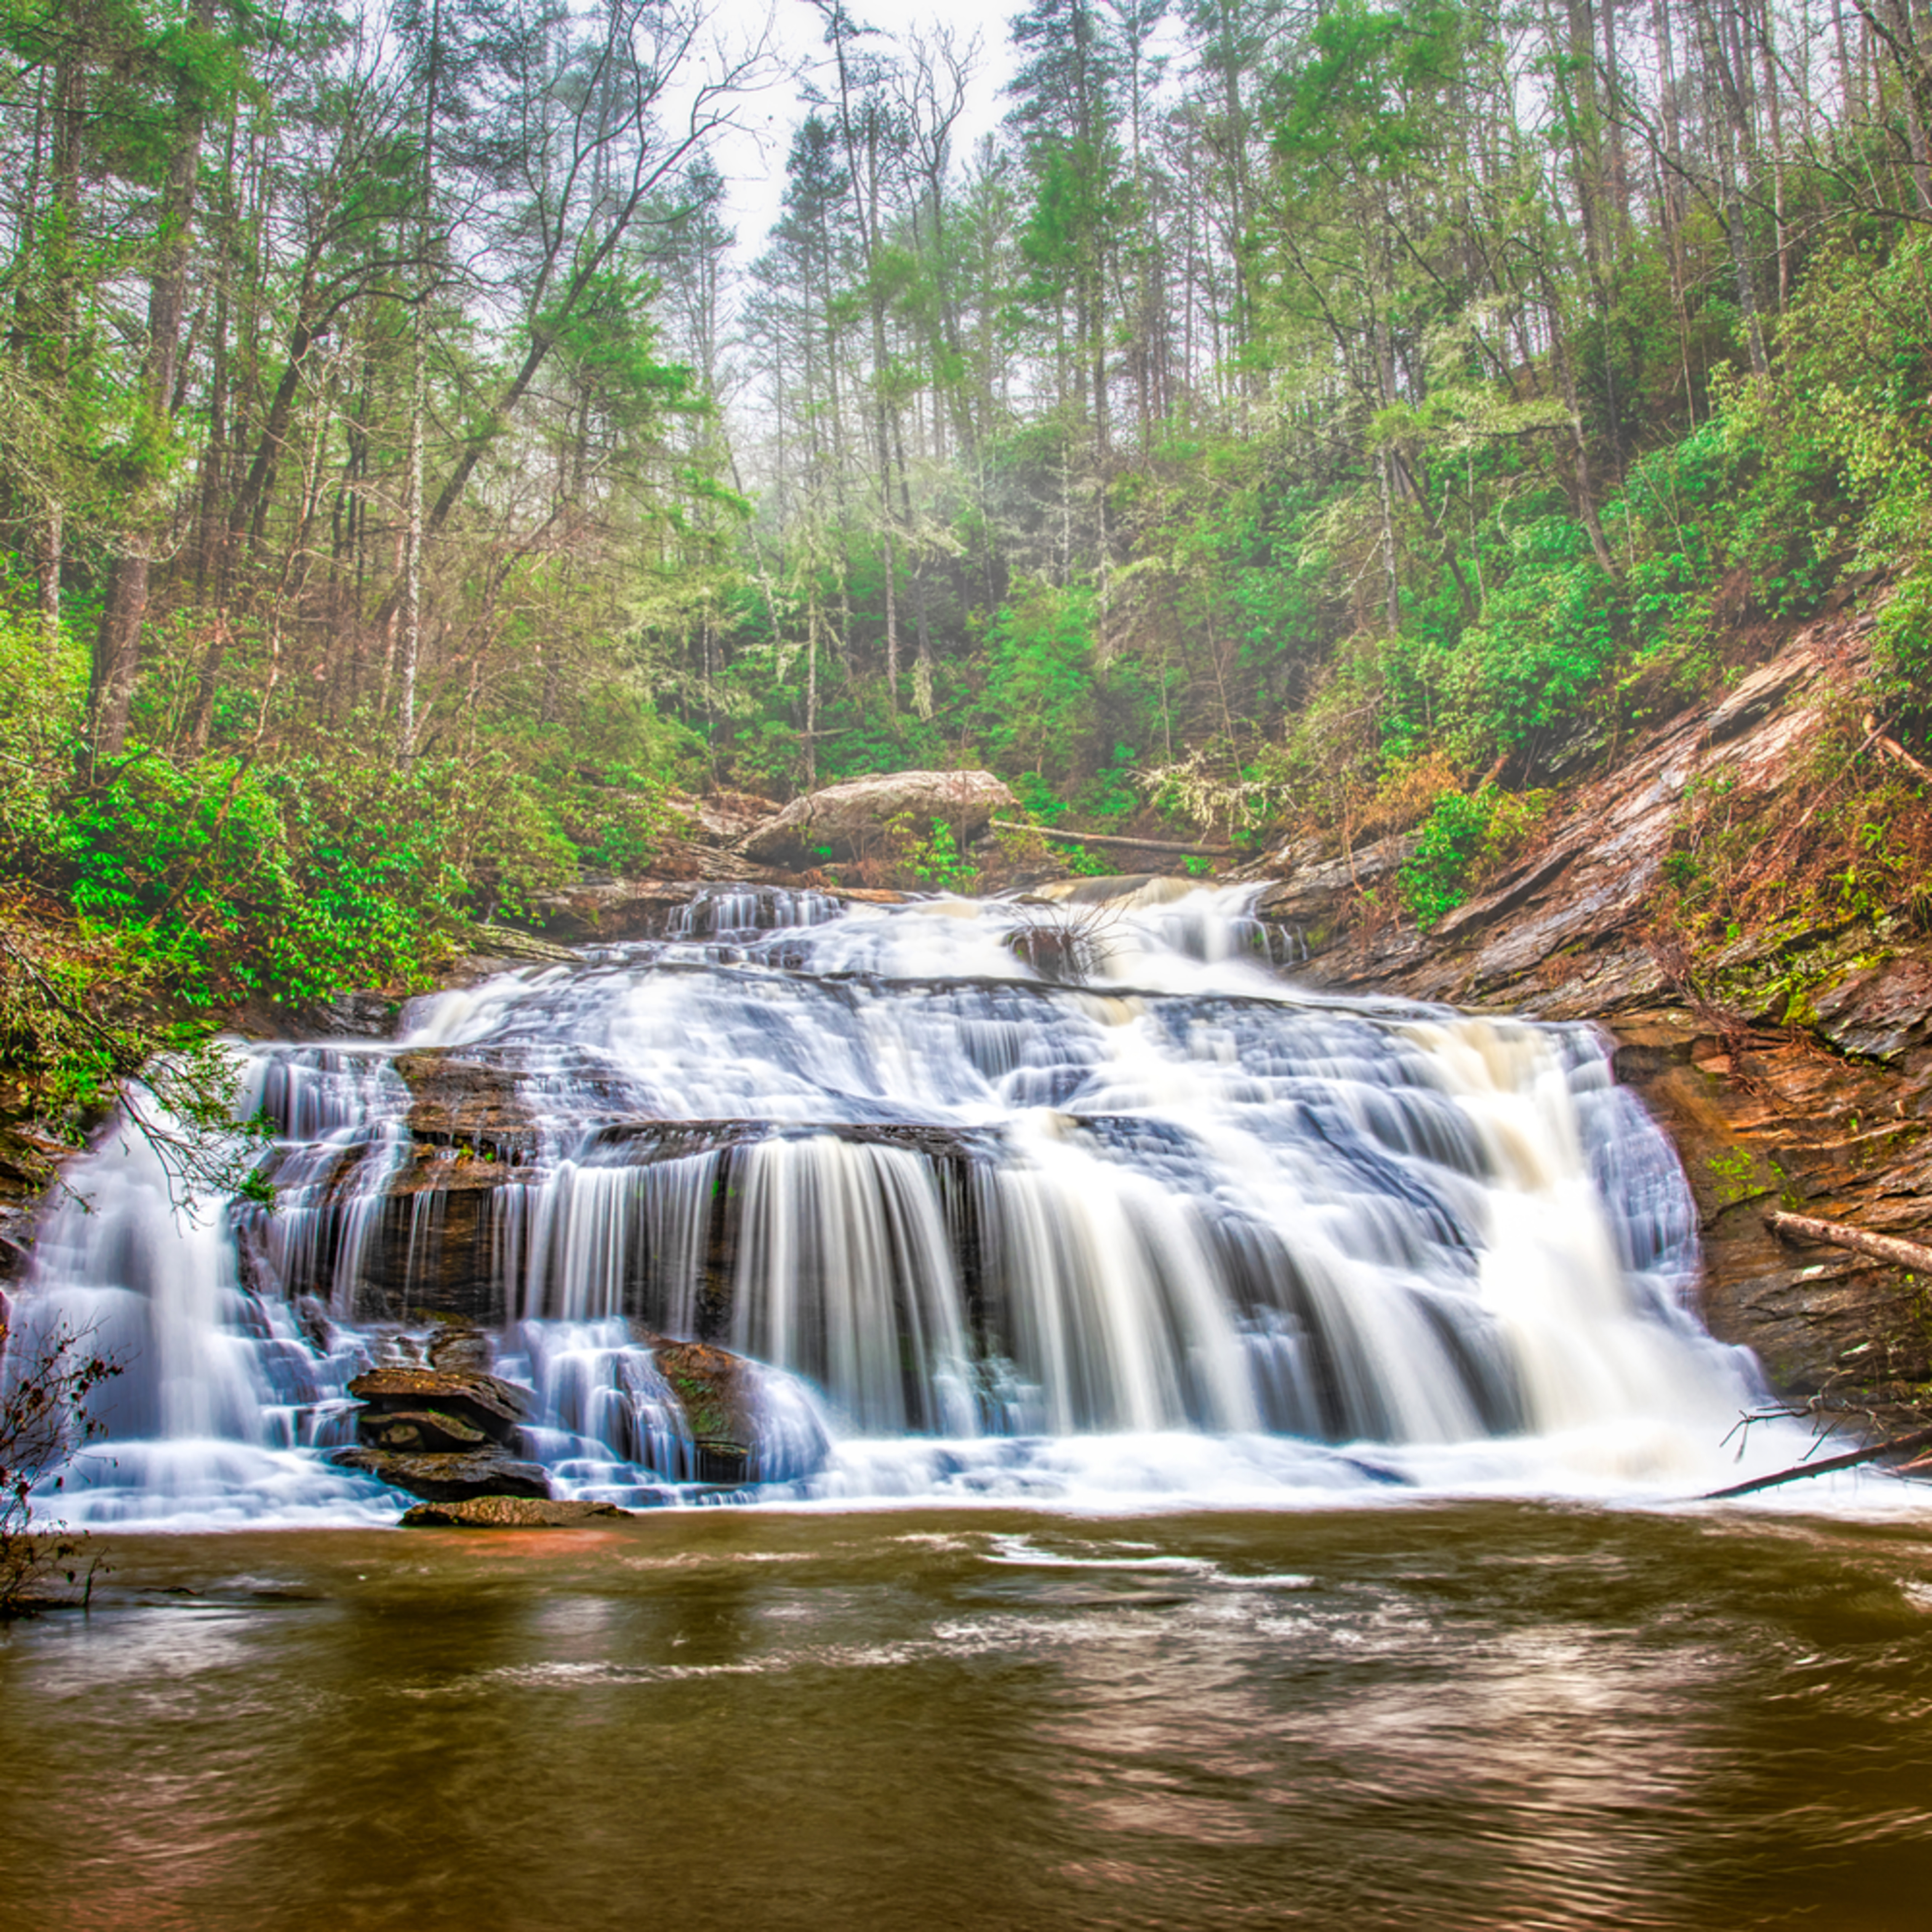 Andy crawford photography panther creek falls 190212 wn3vn0